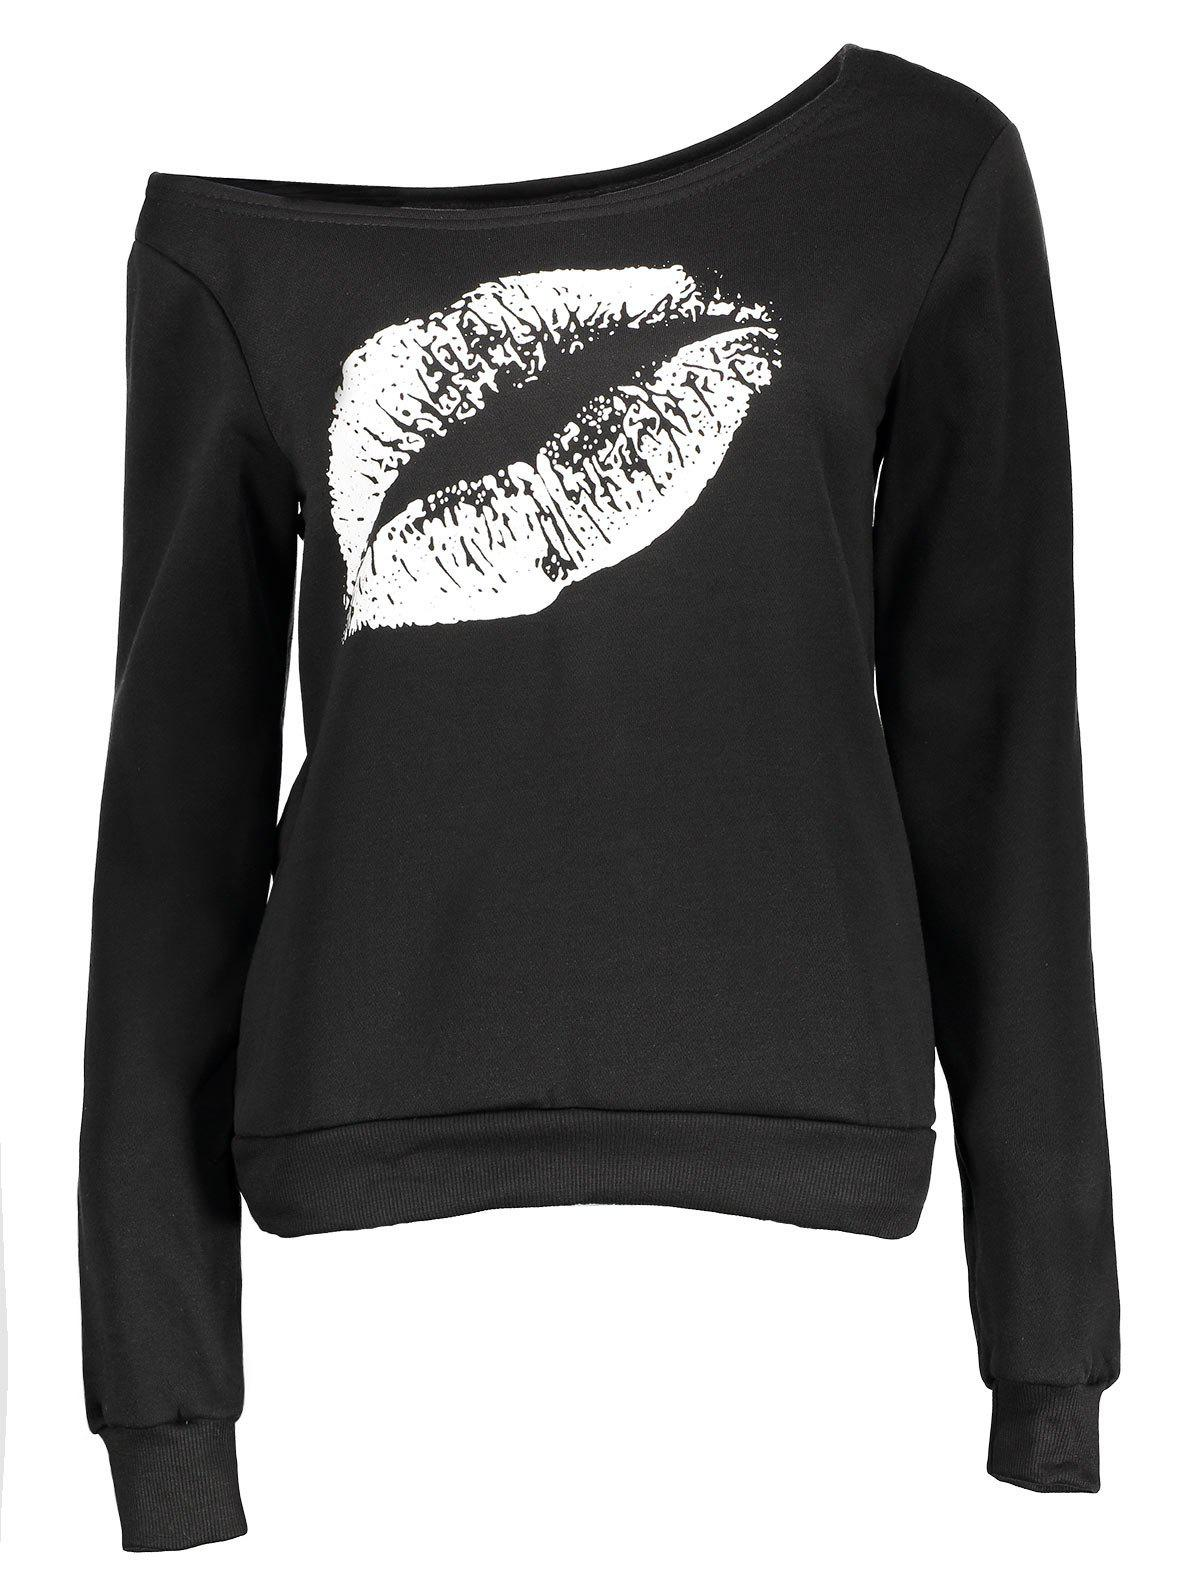 Skew Collar Lip Print SweatshirtWOMEN<br><br>Size: S; Color: WHITE AND BLACK; Material: Polyester; Shirt Length: Regular; Sleeve Length: Full; Style: Fashion; Pattern Style: Print; Weight: 0.3320kg; Package Contents: 1 x Sweatshirt;